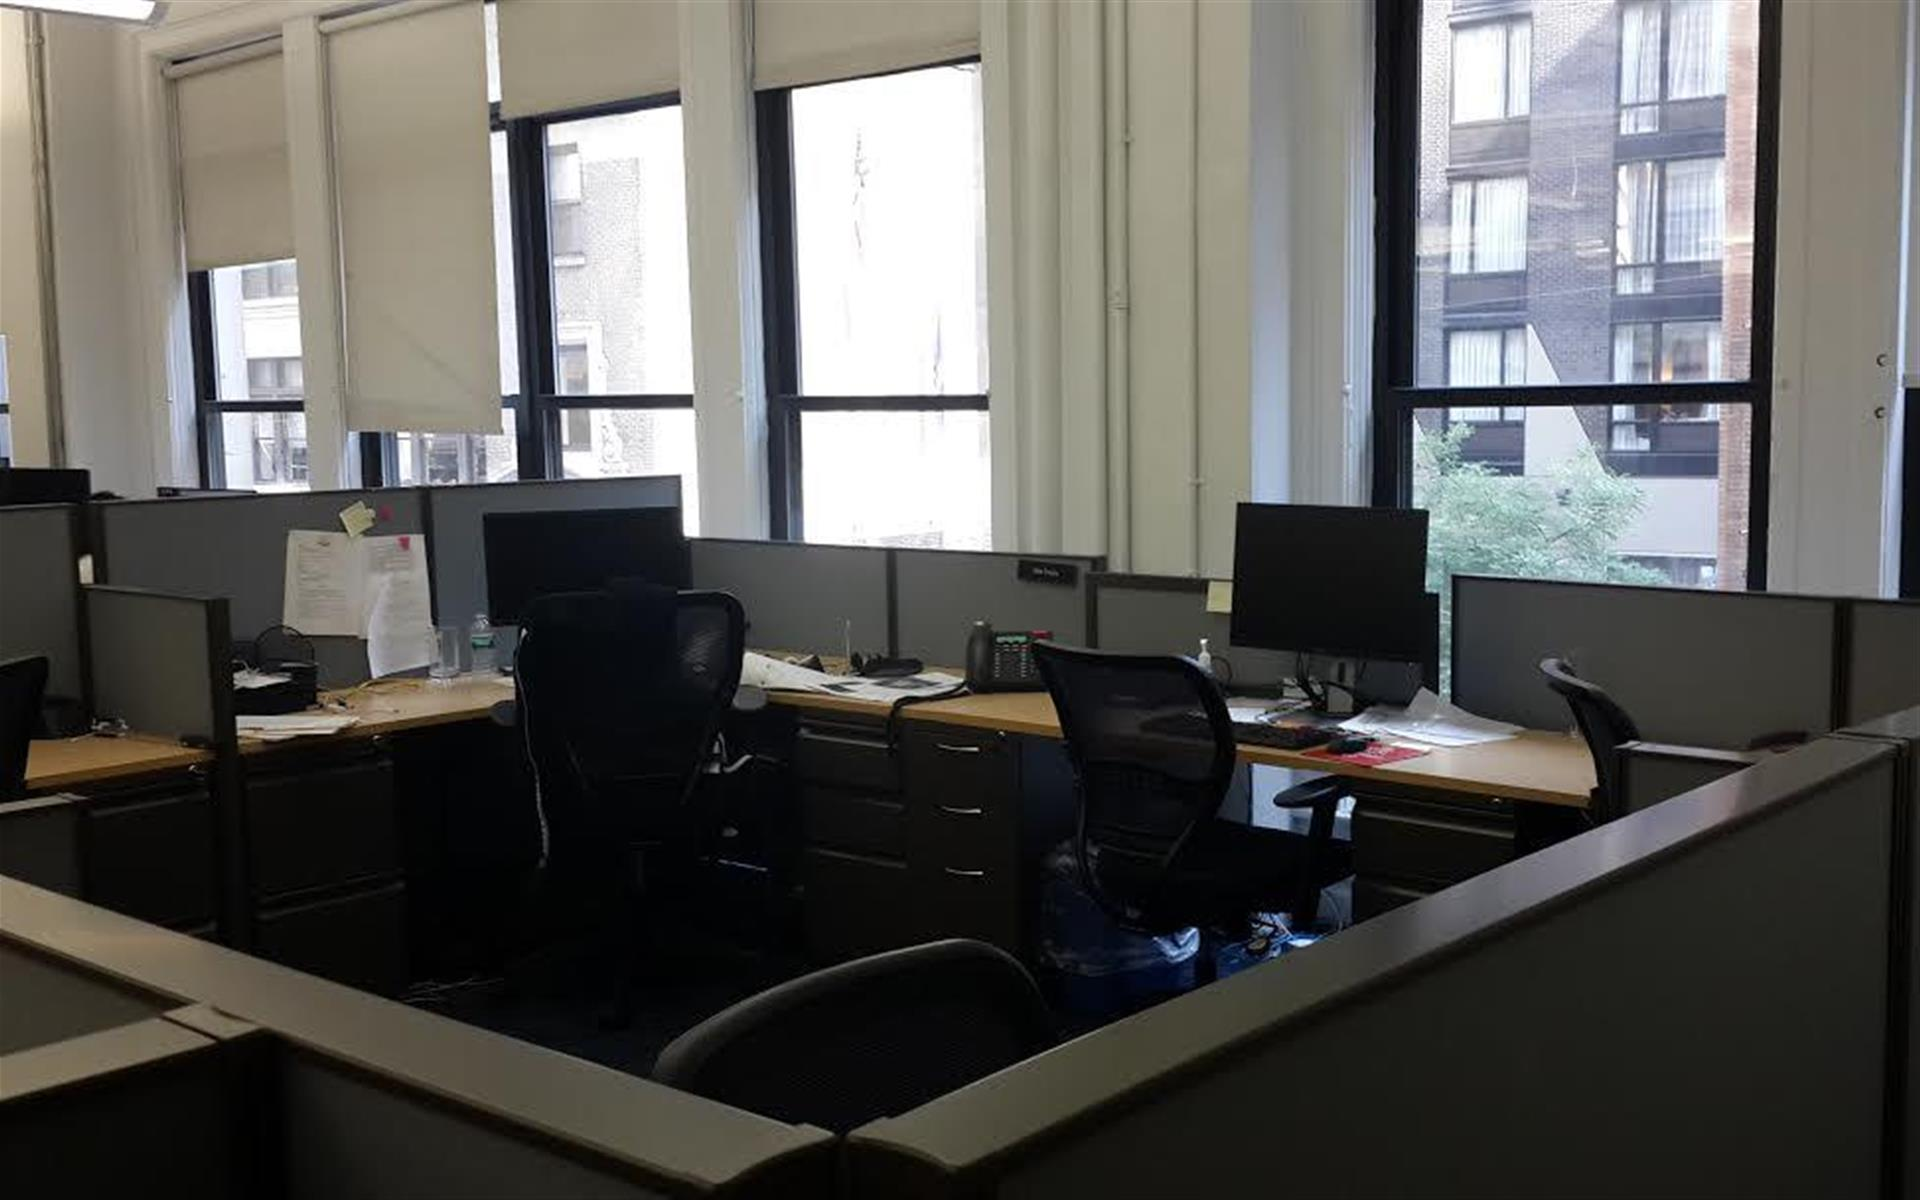 Imperial Space - Chelsea - Floor 2 - Private Offices for Rent